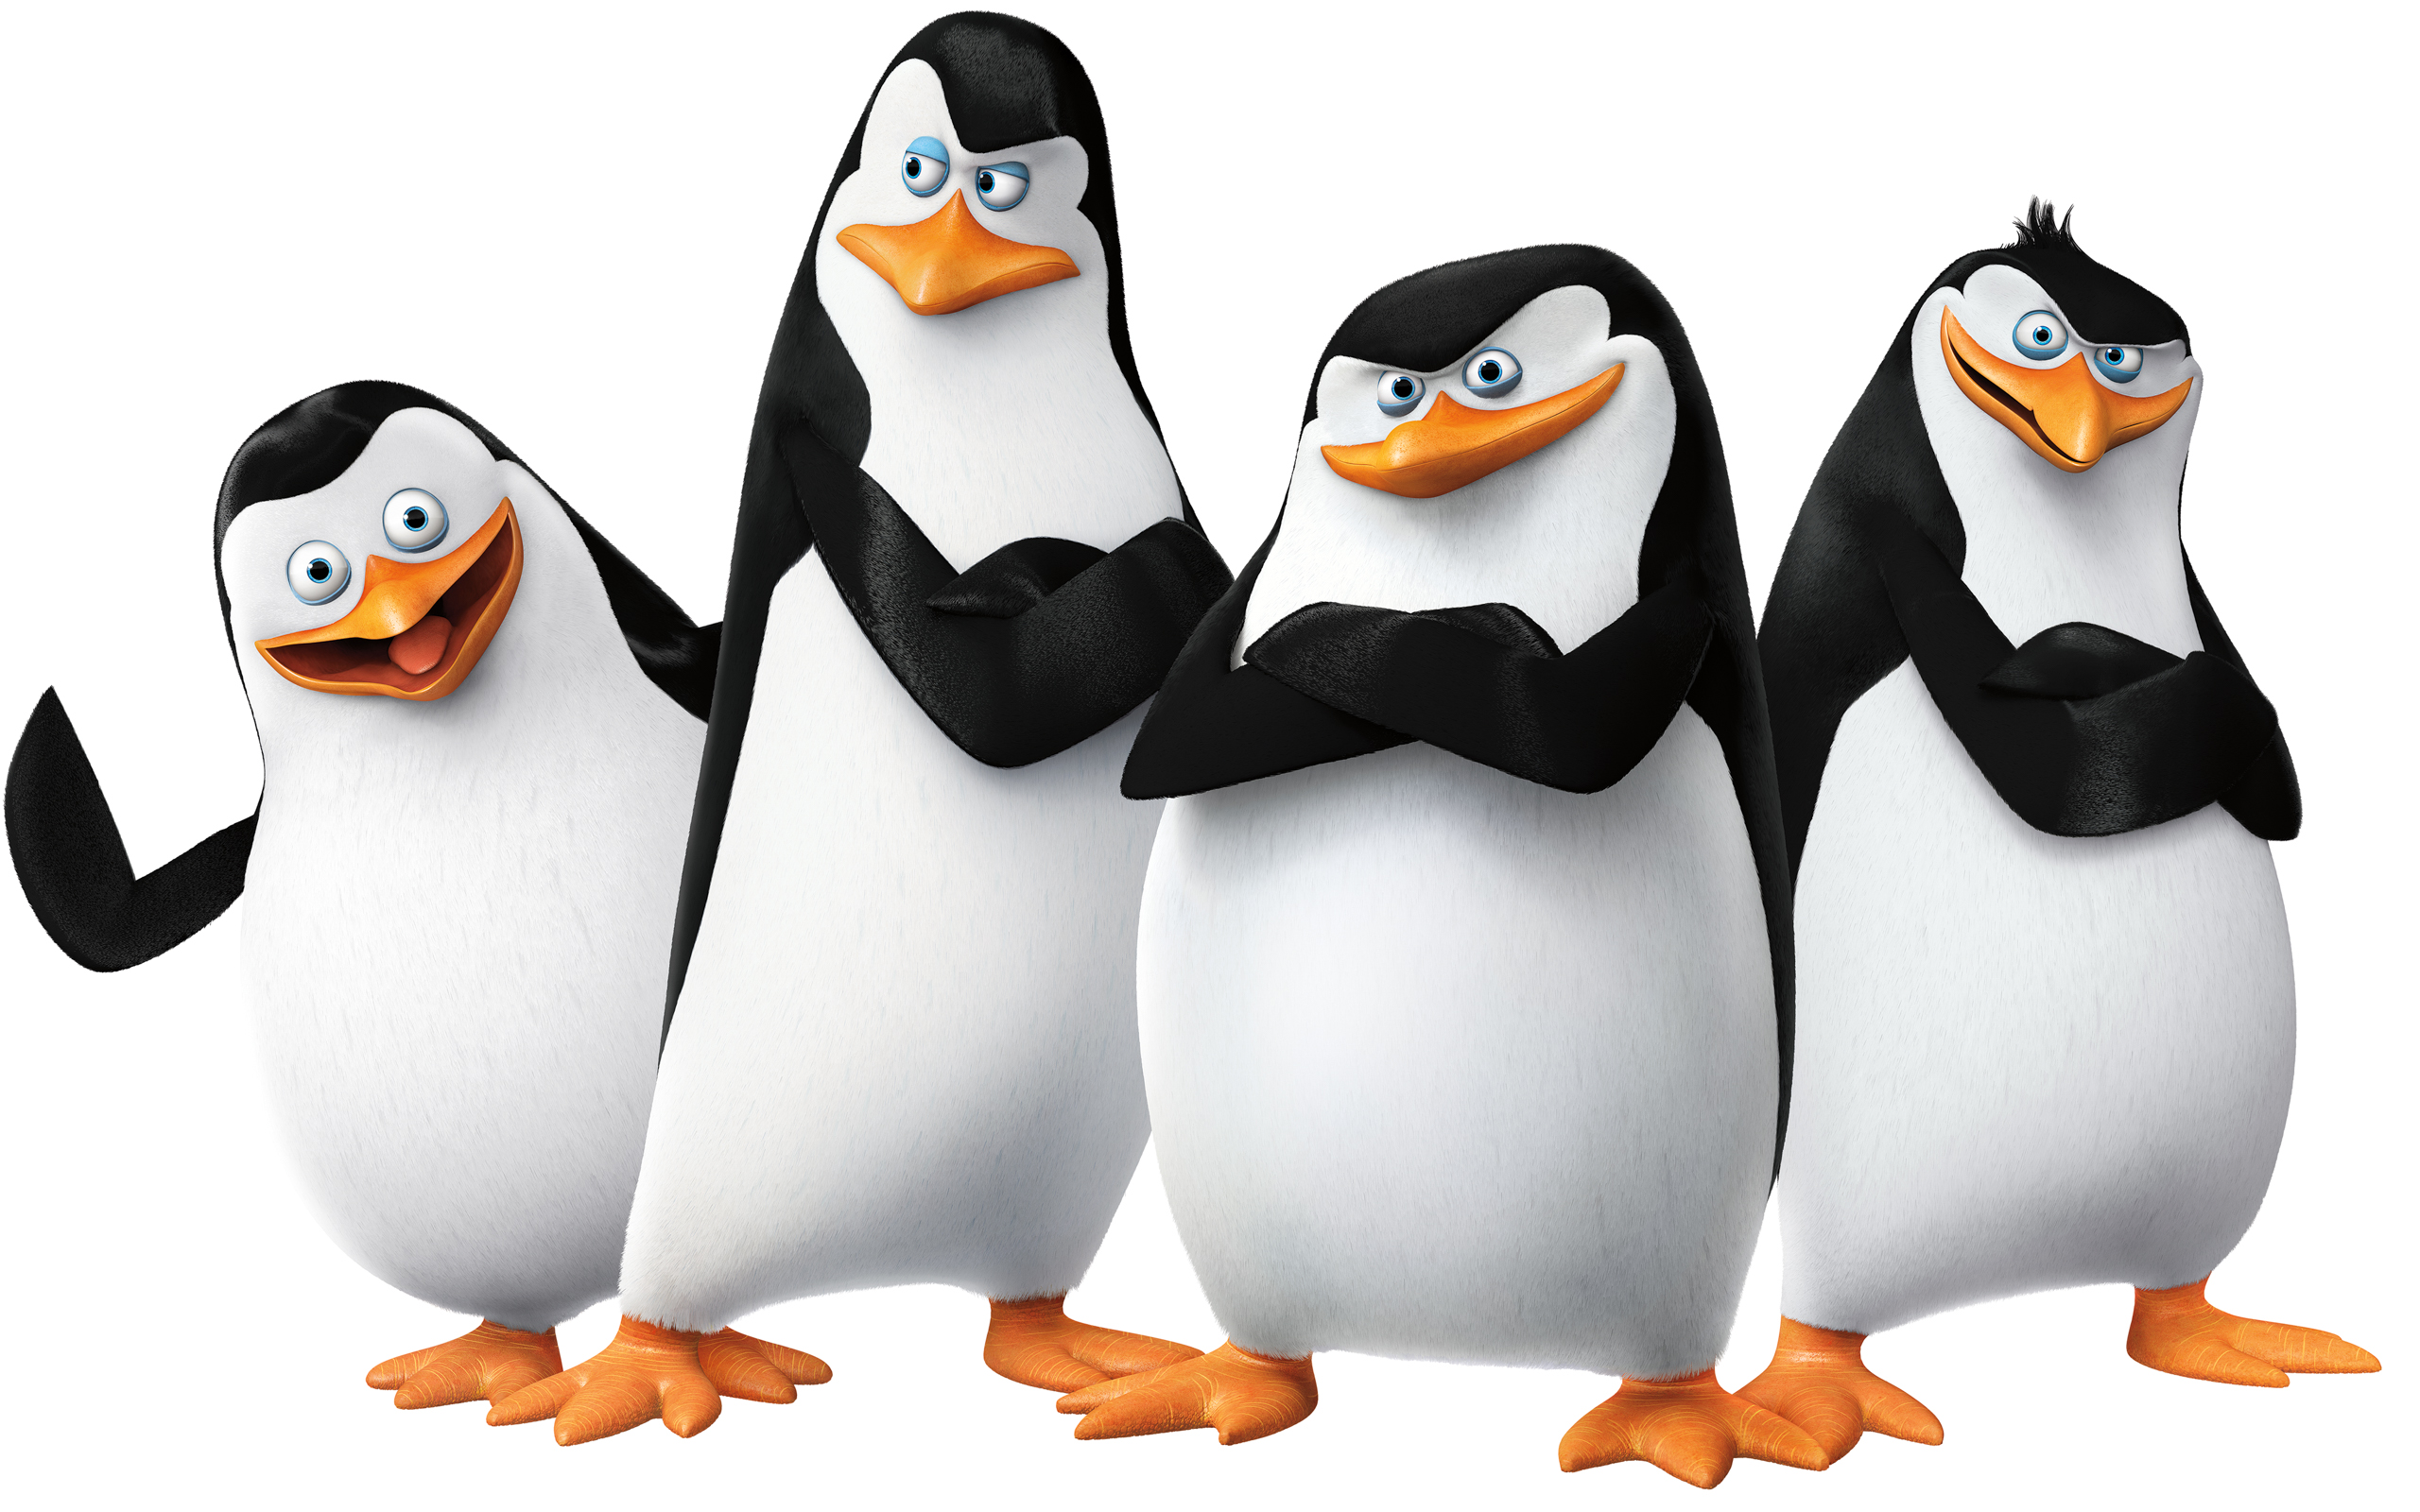 rabstol_net_penguins_of_madagascar_01